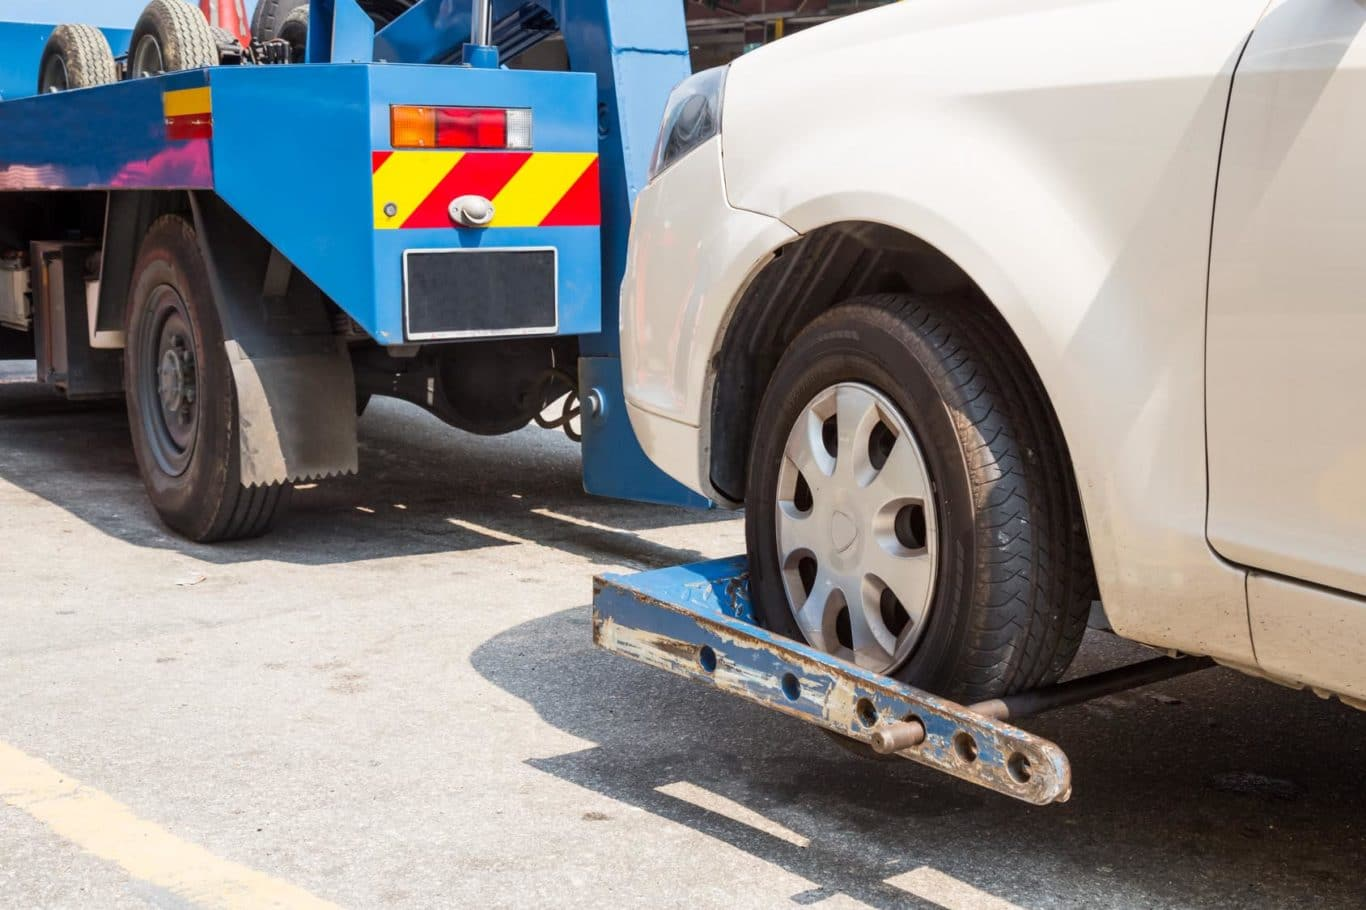 Annacurra expert Car Towing services